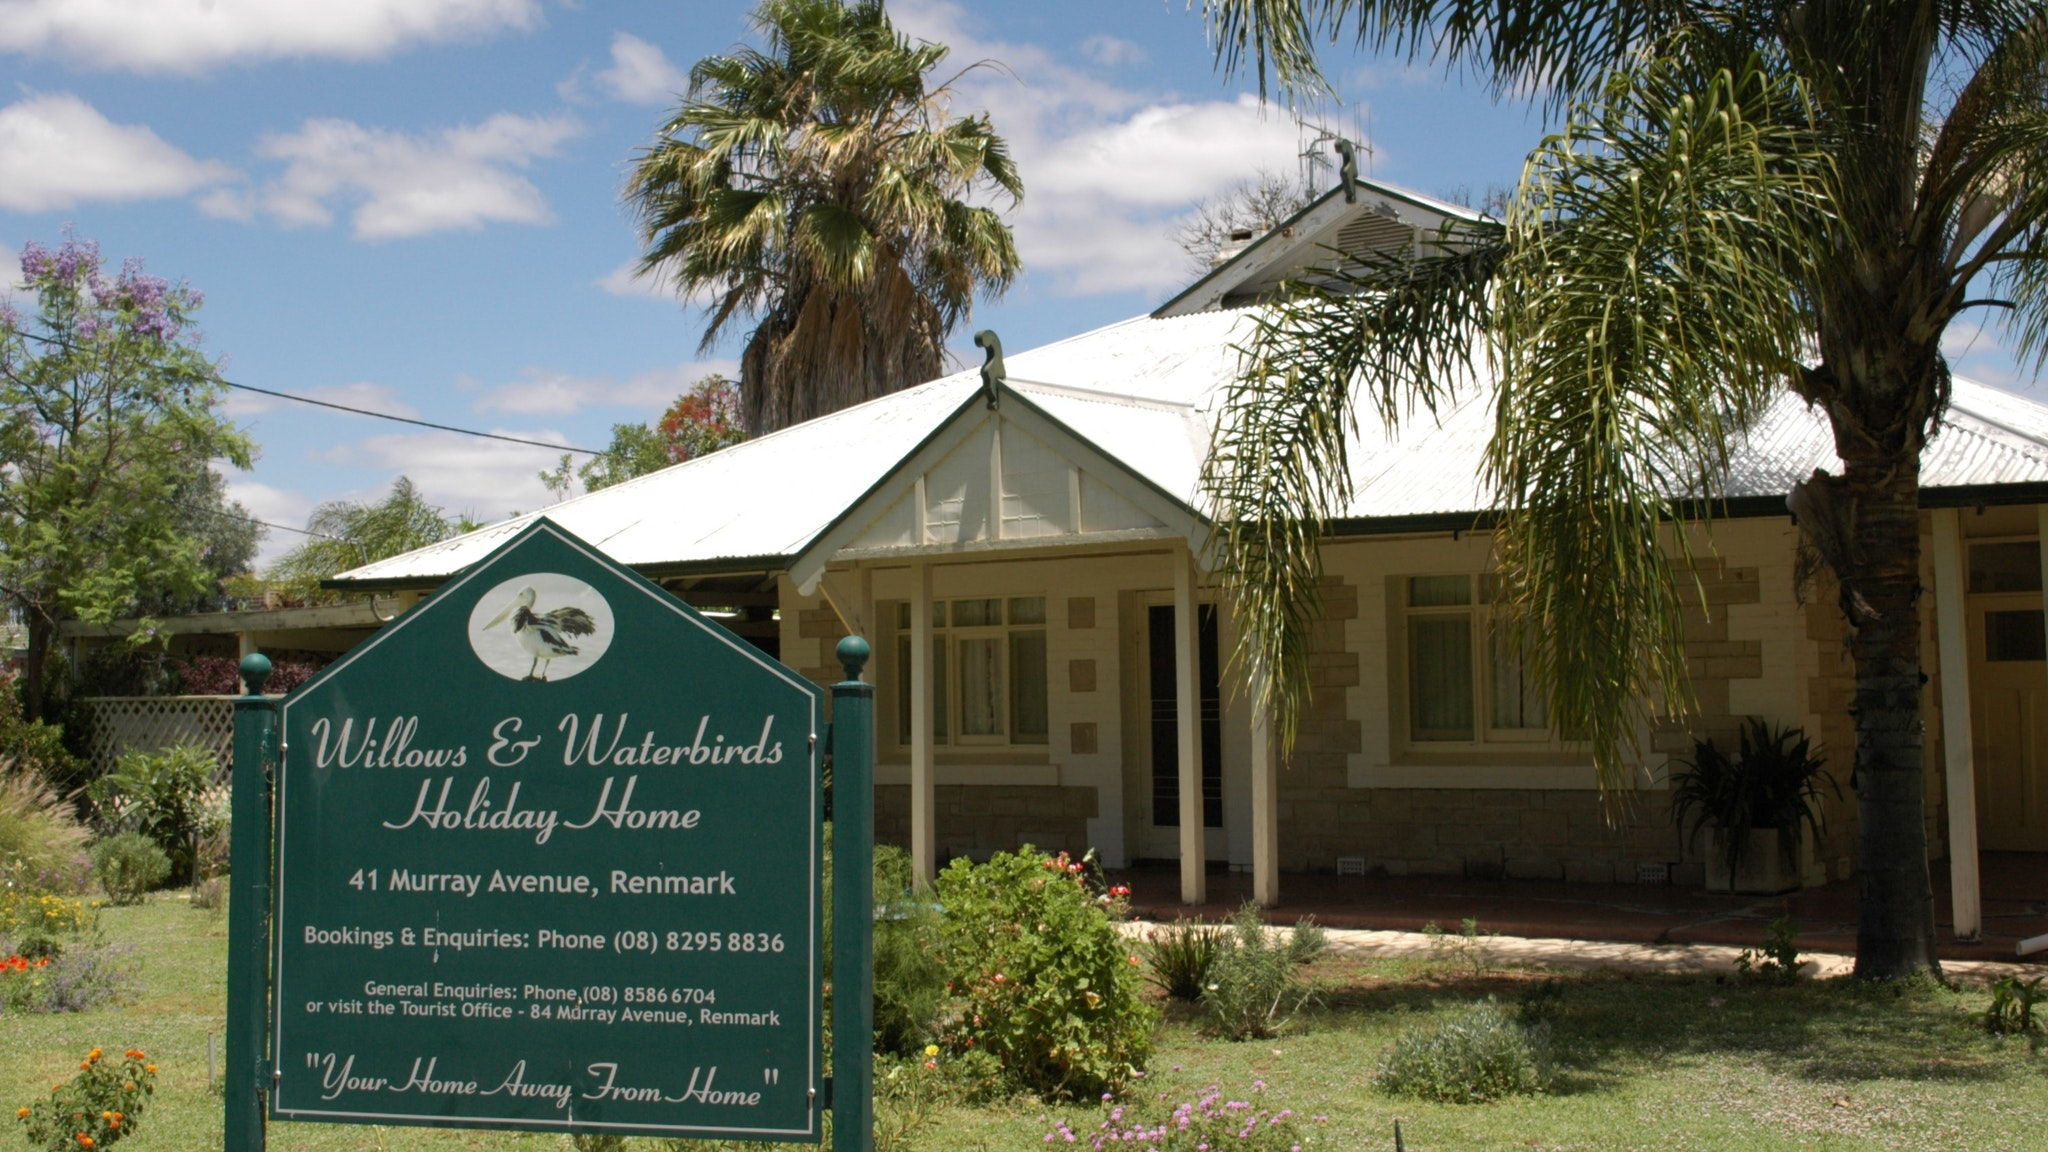 Renmark Holiday Home Willows  Waterbirds - Tourism TAS